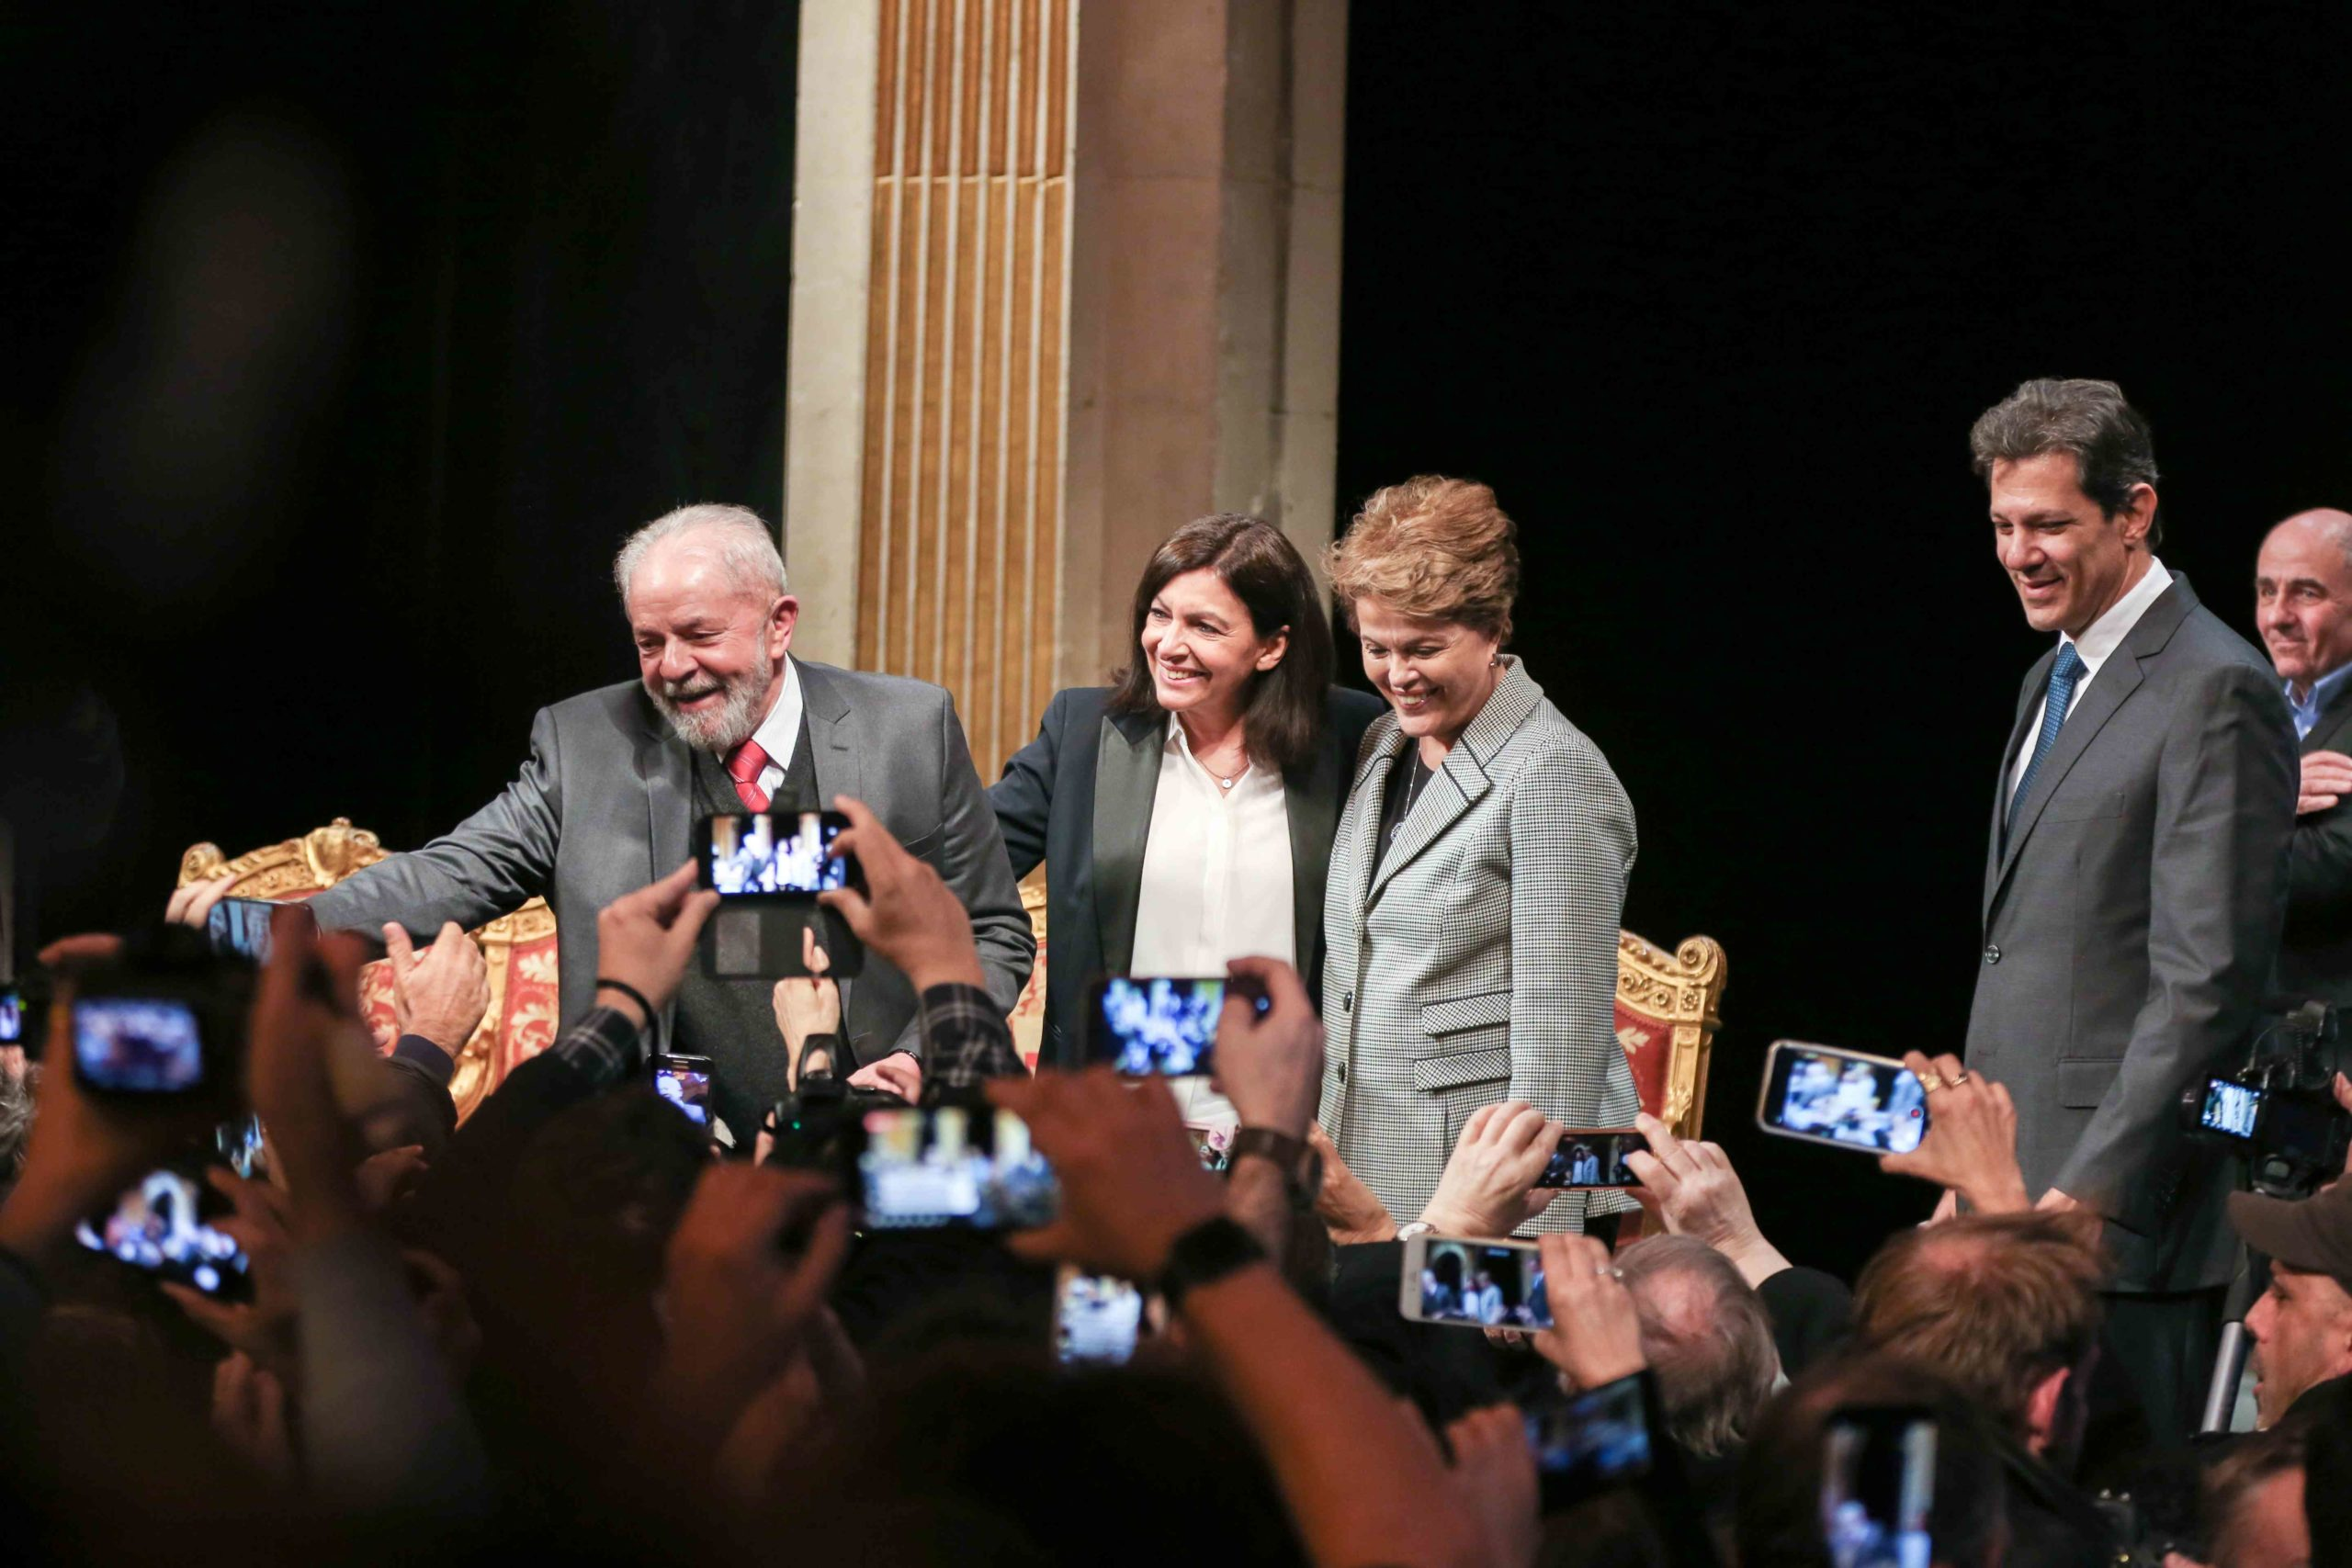 (Lto R) Former Brazilian president Luiz Inacio Lula da Silva, Paris Mayor and candidate for re-election Anne Hidalgo, Former Brazilian president Dilma Rousseff and former Sao Paolo Mayor Fernando Hadda salute the crowd as they take part in a ceremony at th